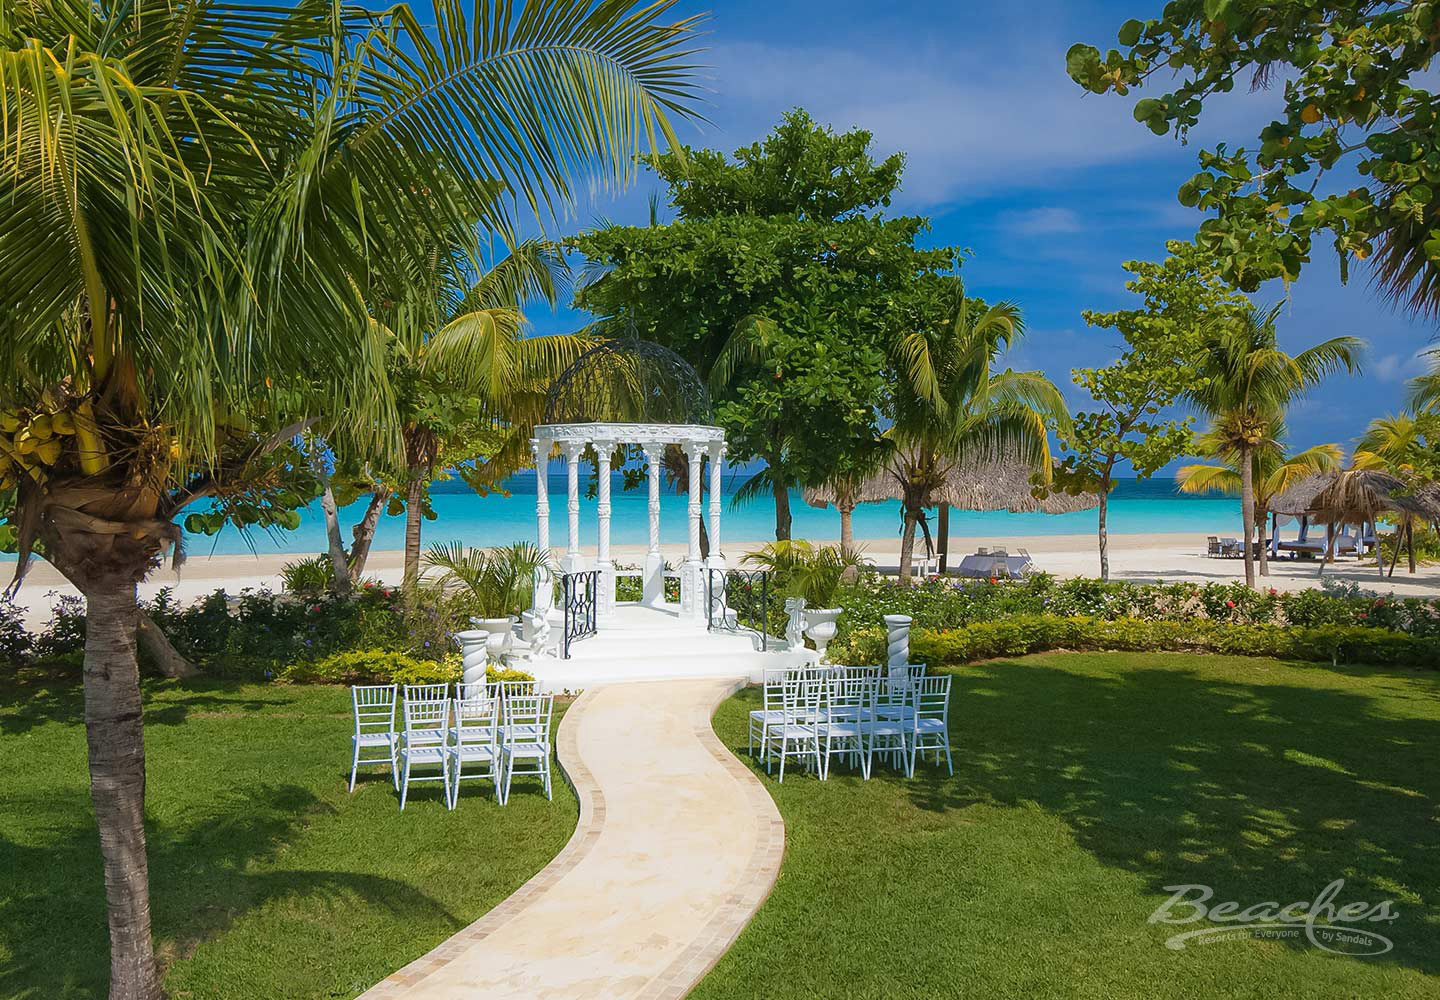 Travel Agency All-Inclusive Resort Beaches Negril 077